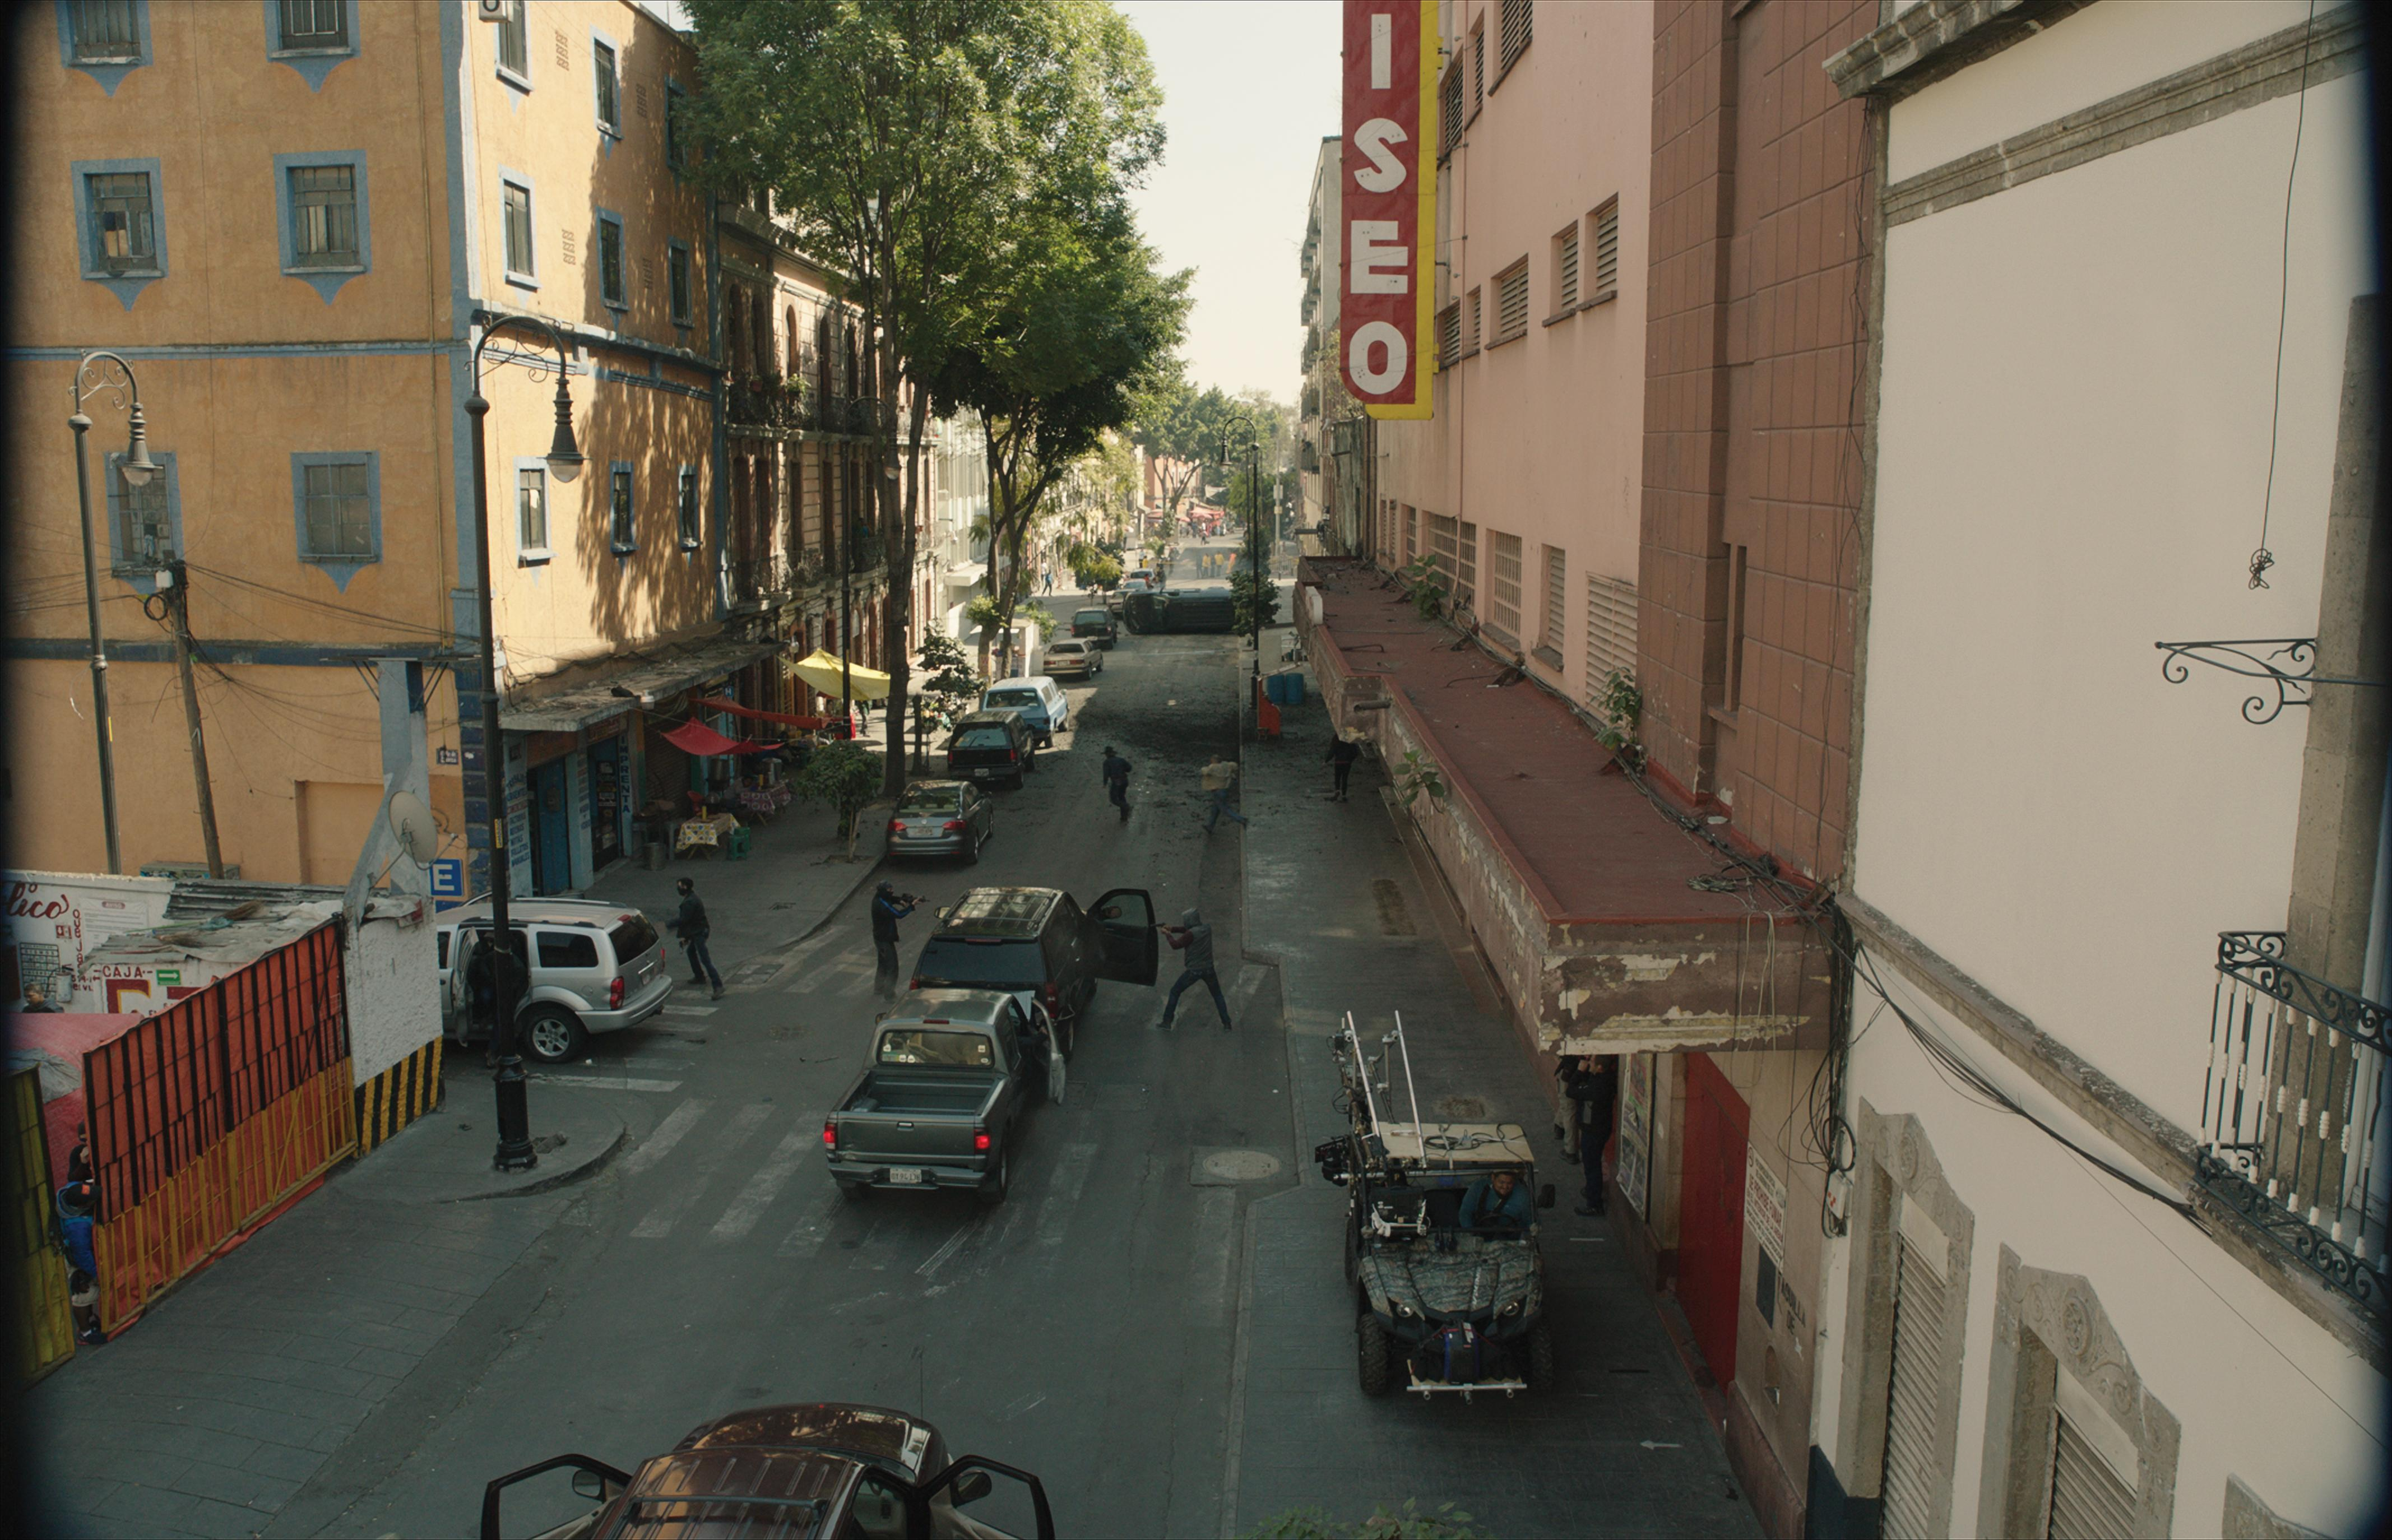 A clean street scene shot from Sicario: Day of the Soldado